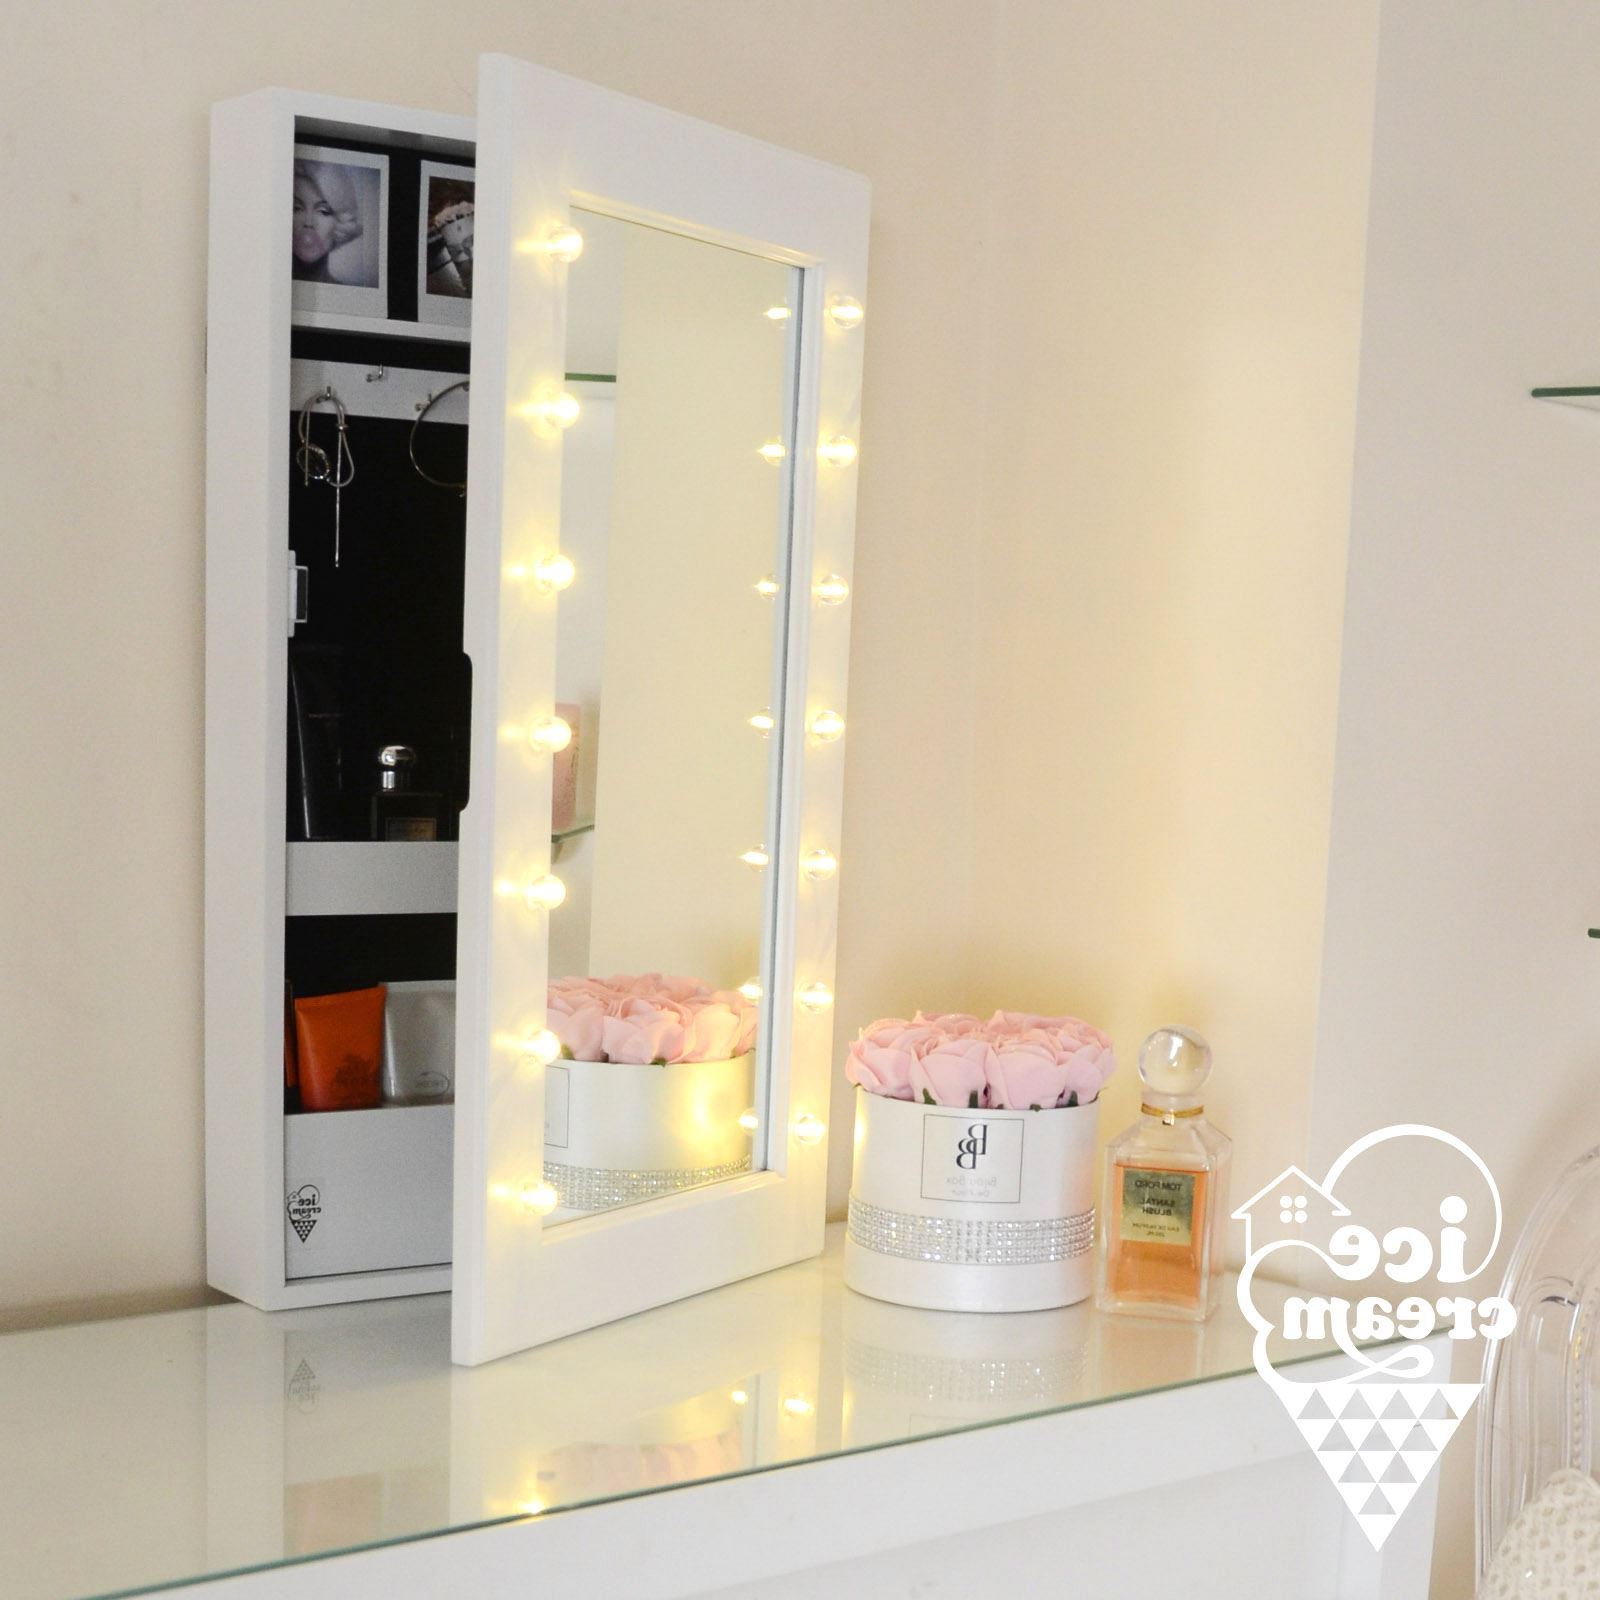 Led Wall Mirrors Intended For Well Known Details About White Desktop / Wall Mounted Jewellery Mirror Cabinet With Led Lights Storage (View 20 of 20)